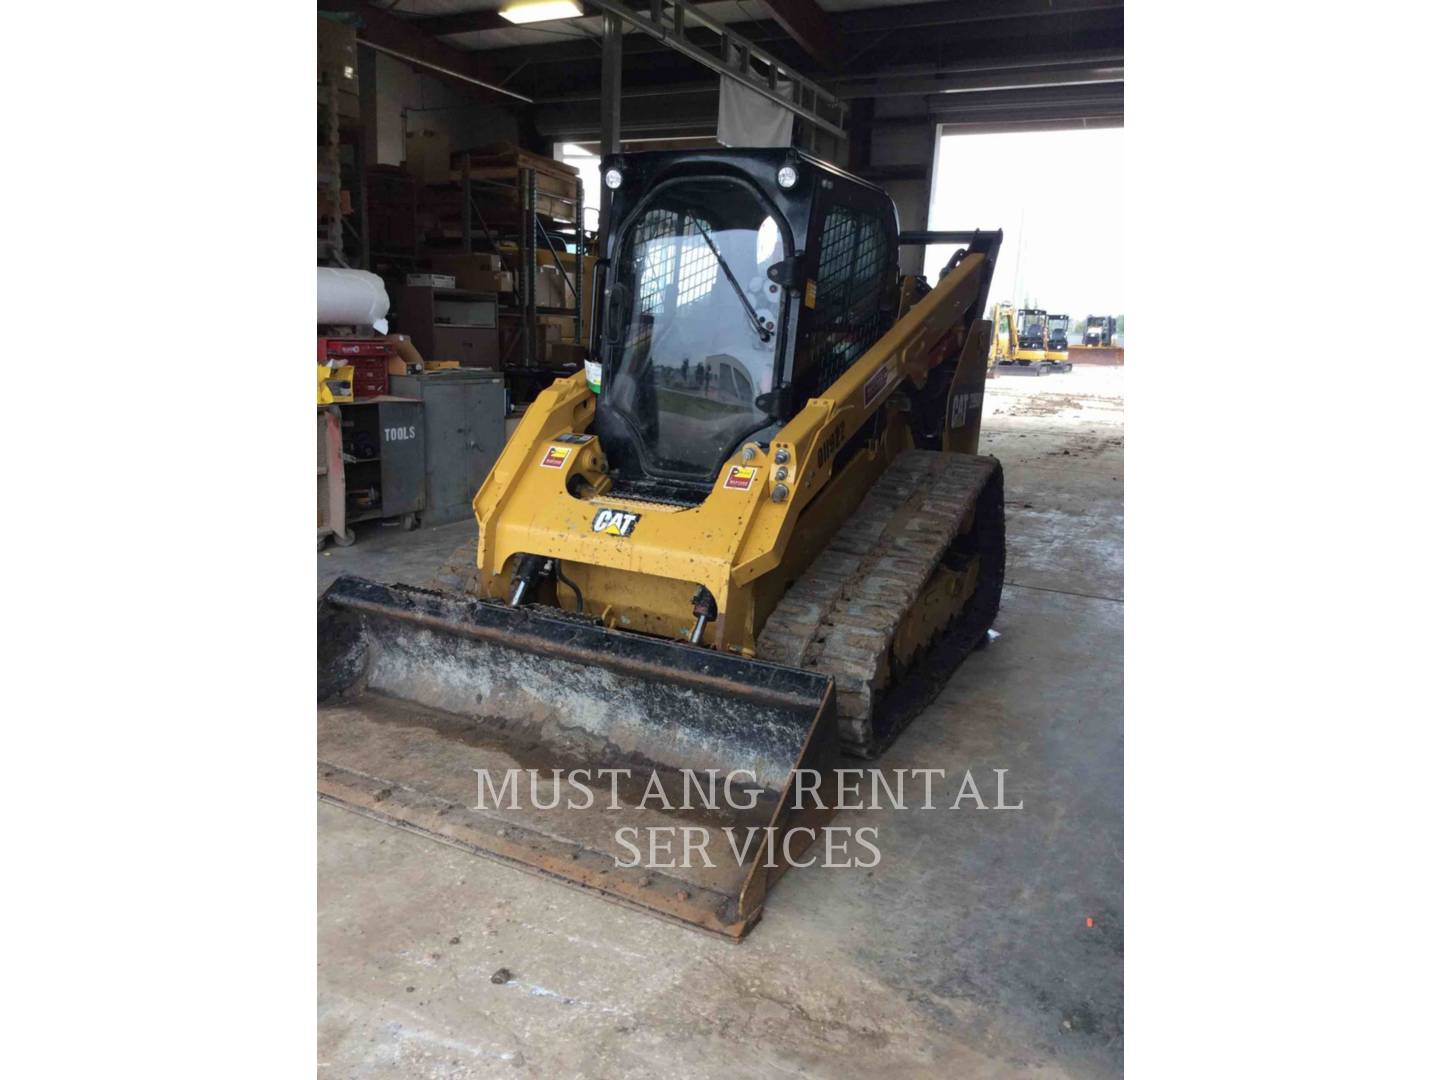 2017 Caterpillar 299hfca Compact Track Loader For Sale In Houston